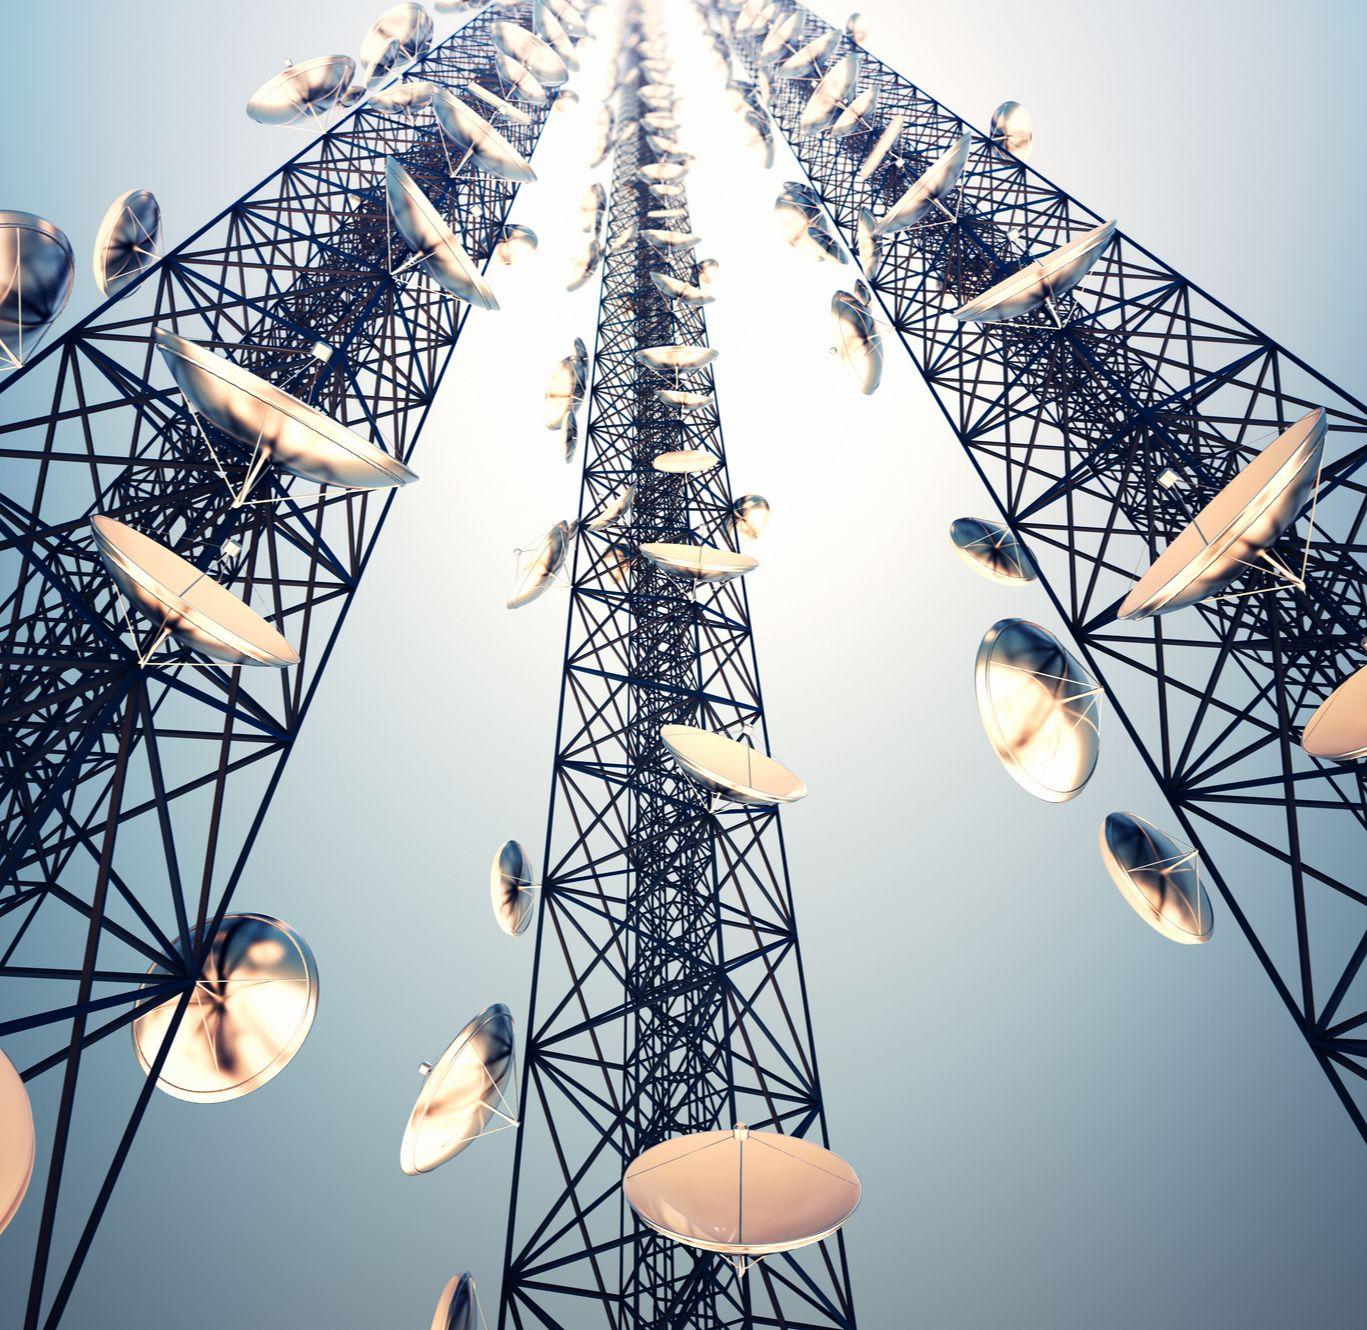 Photo of a tower with many antennas listening